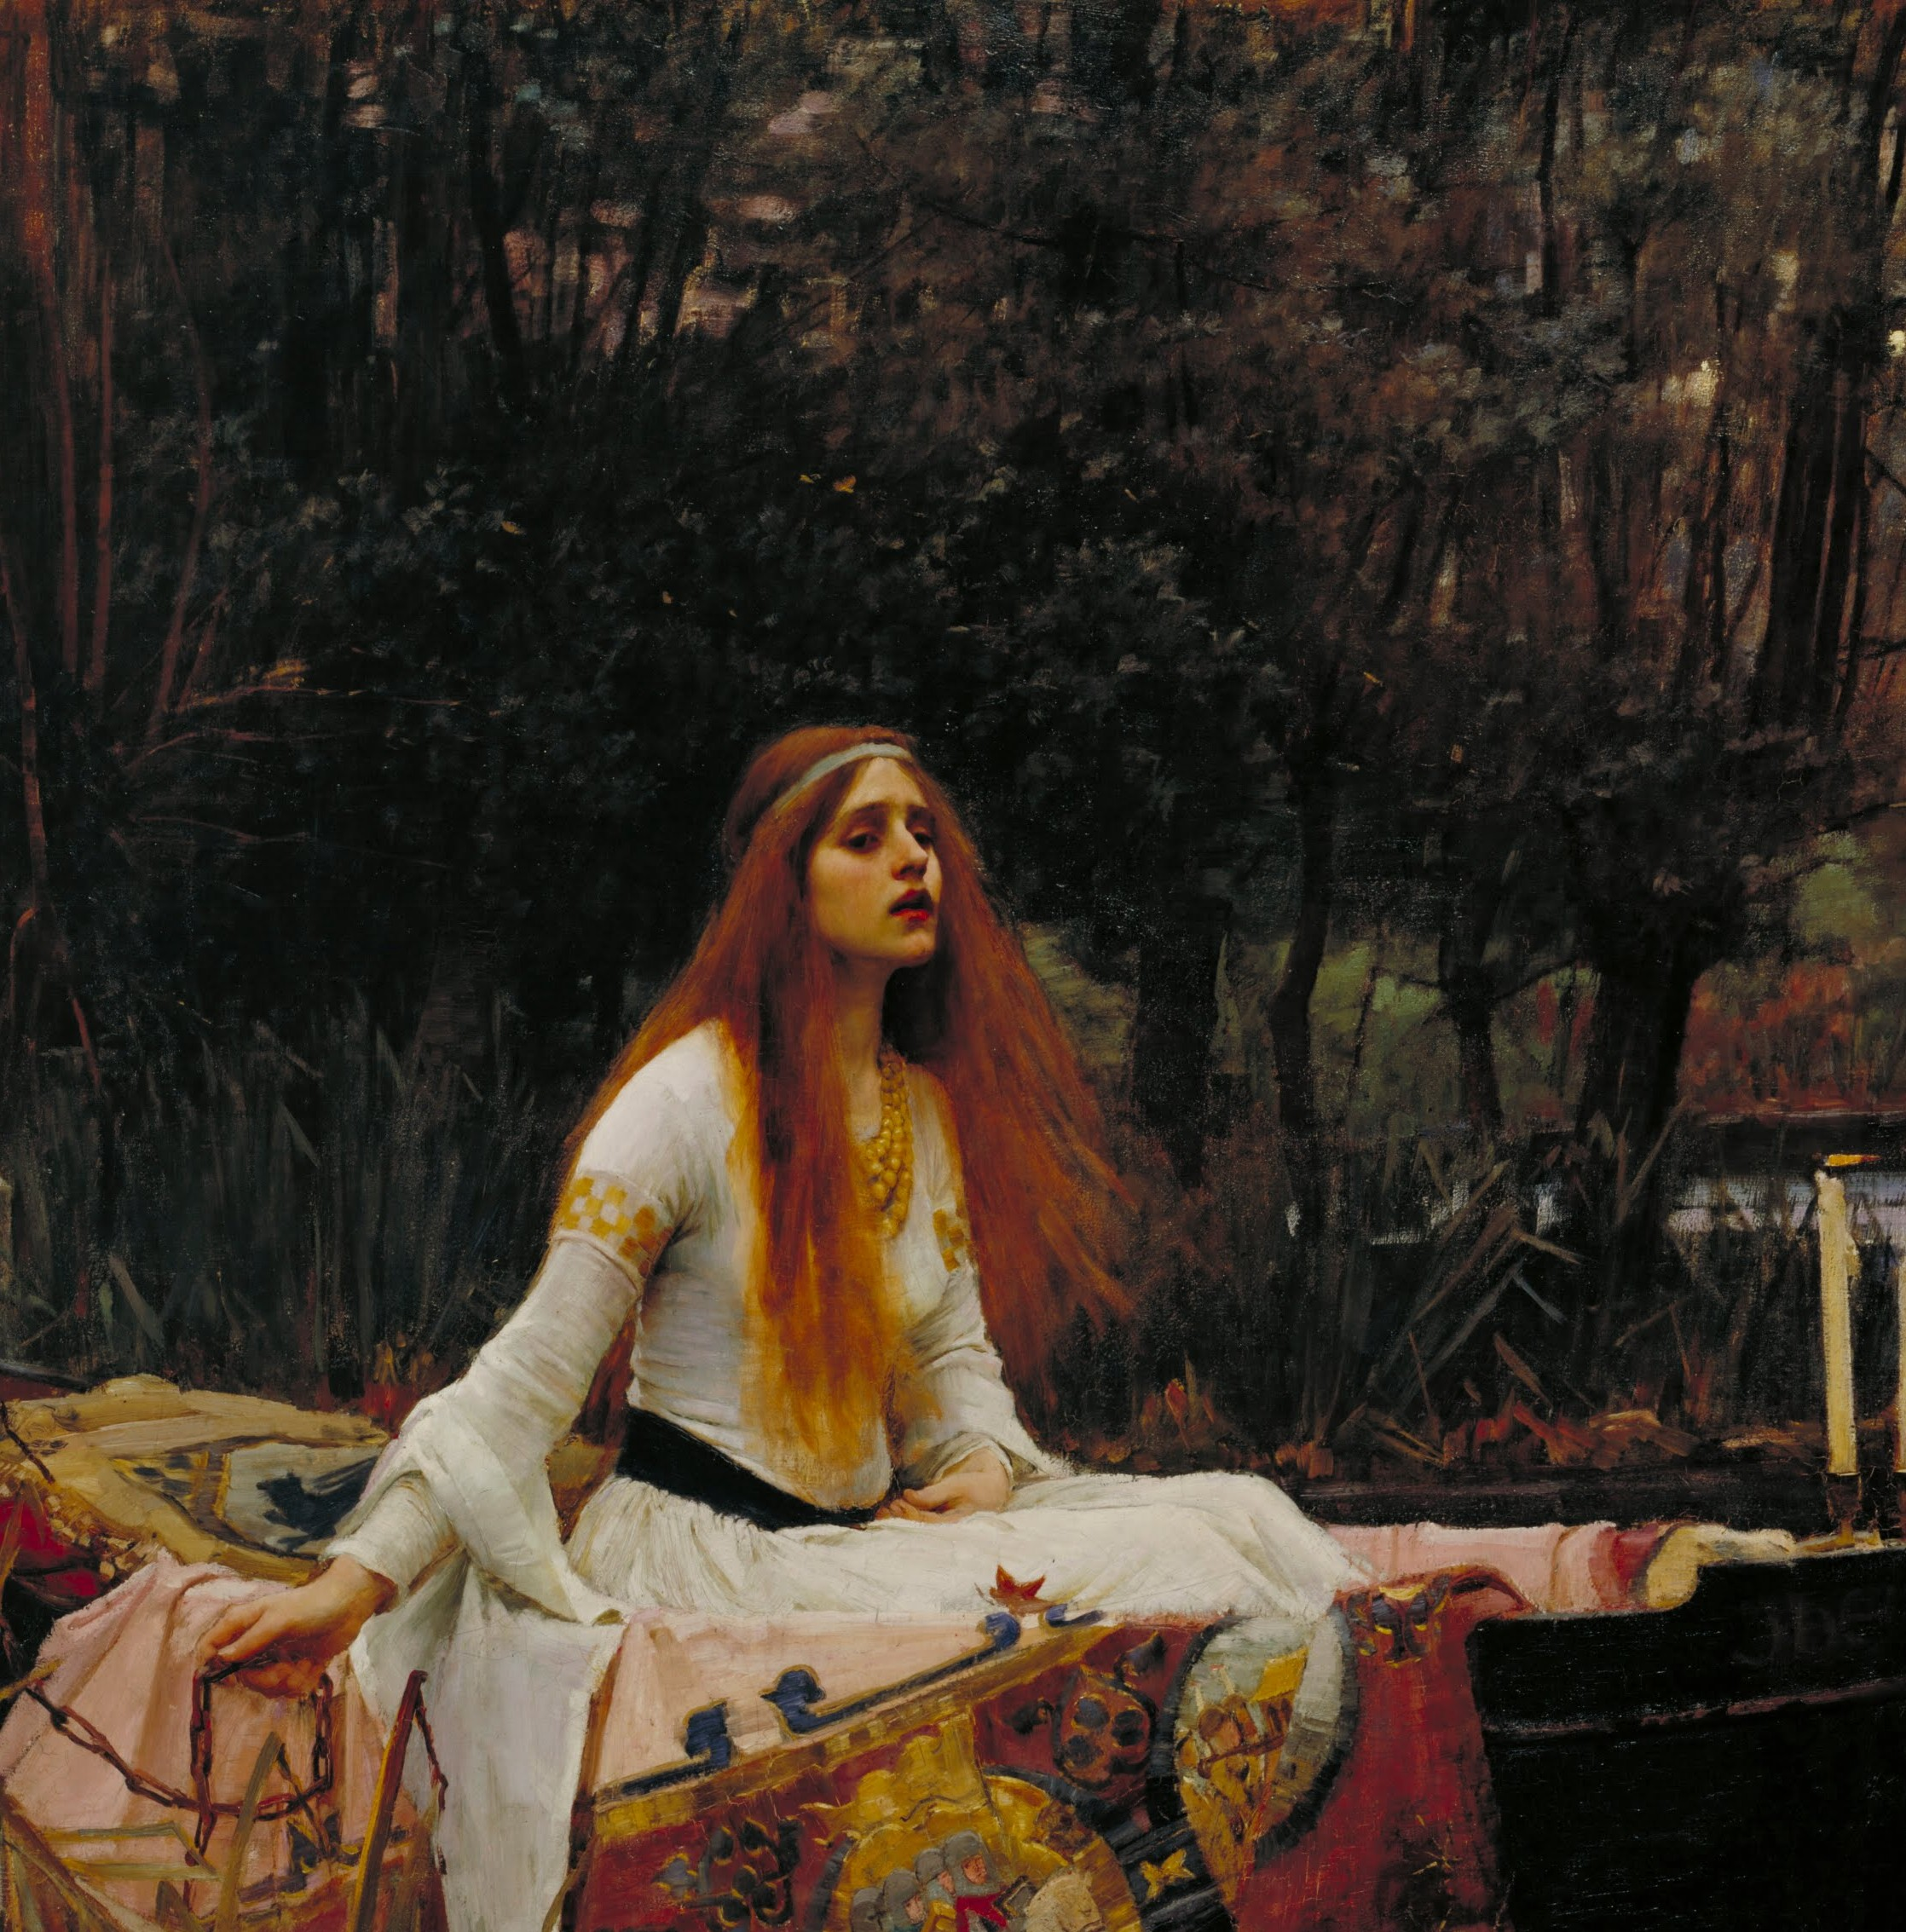 John William Waterhouse's  The Lady of Shalott  (1888), currently on display at Tate Britain